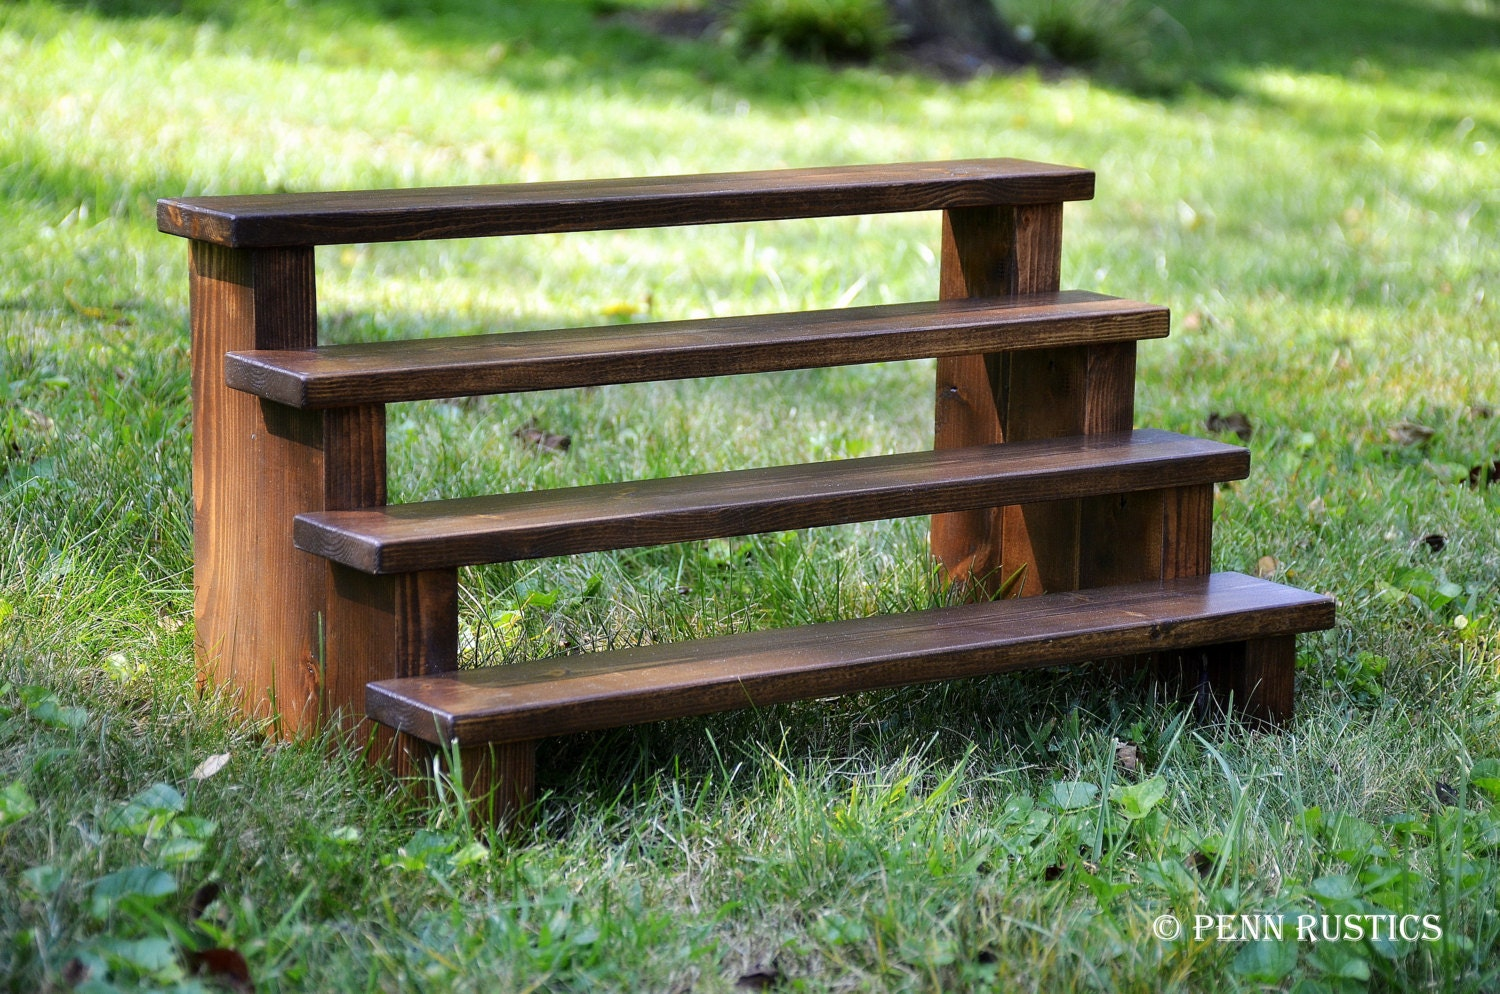 Cupcake Stand 4 Tiered Rustic Wooden Display Stand Etsy